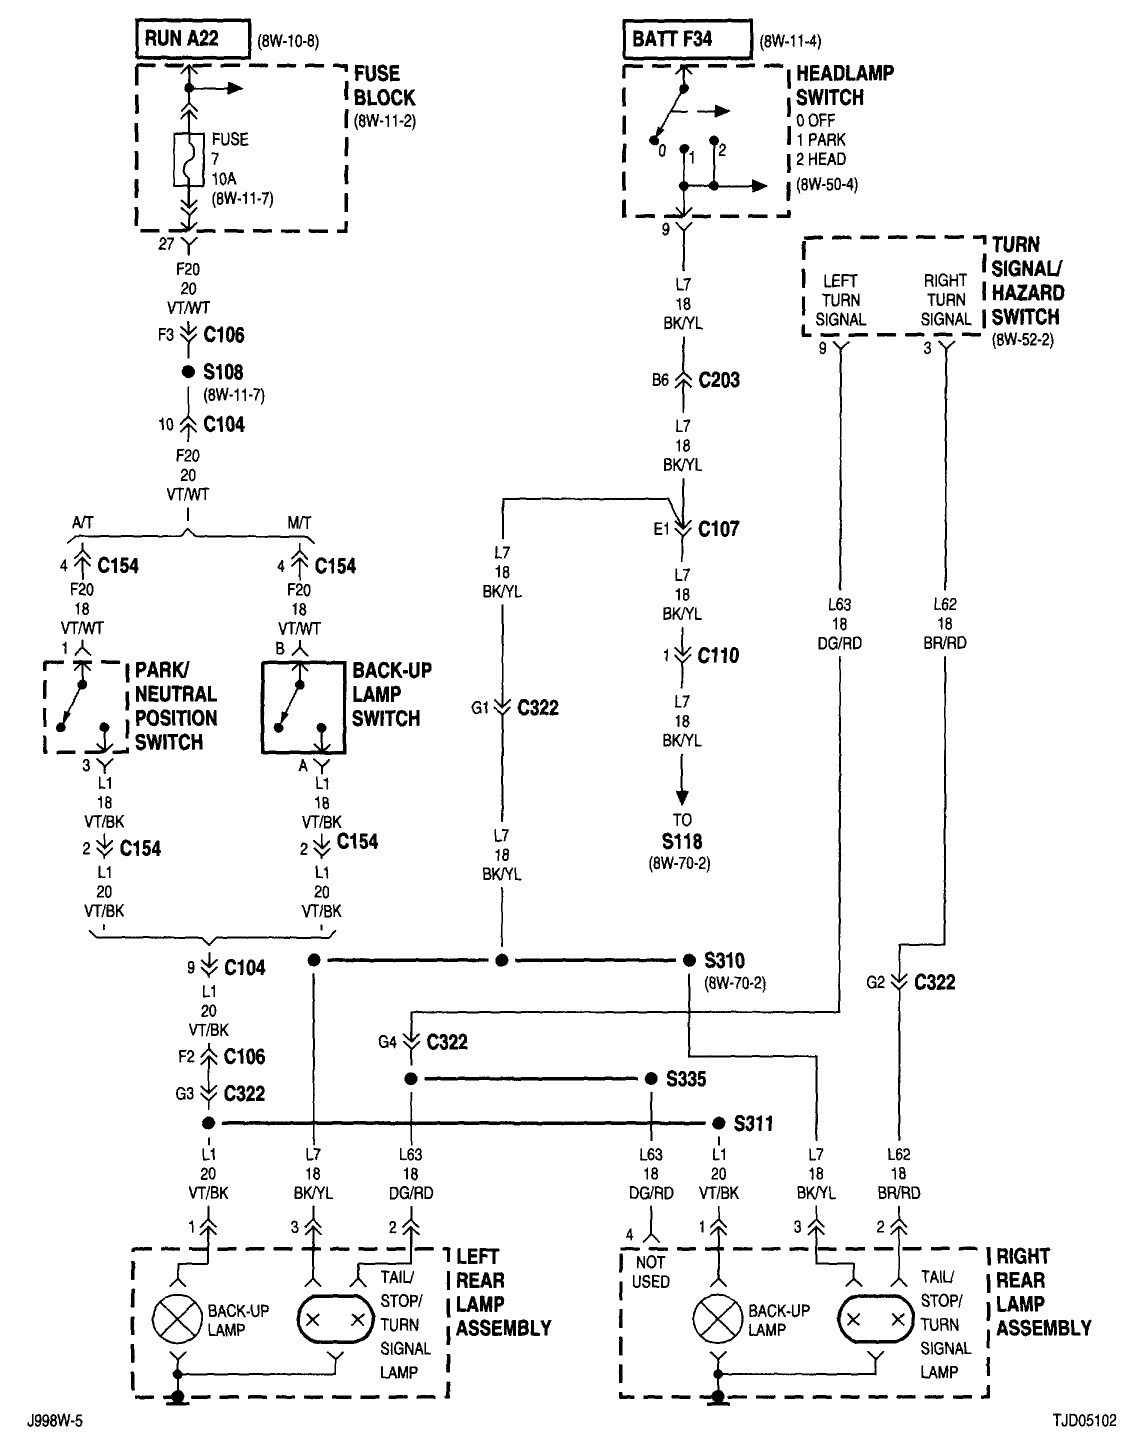 1983 jeep cj7 heater wiring diagram wiring diagram meta Dodge Ram Automatic Transmission Diagram 1983 jeep cj7 heater wiring diagram online wiring diagram 1984 jeep cj7 wiring diagram 1983 jeep cj7 heater wiring diagram